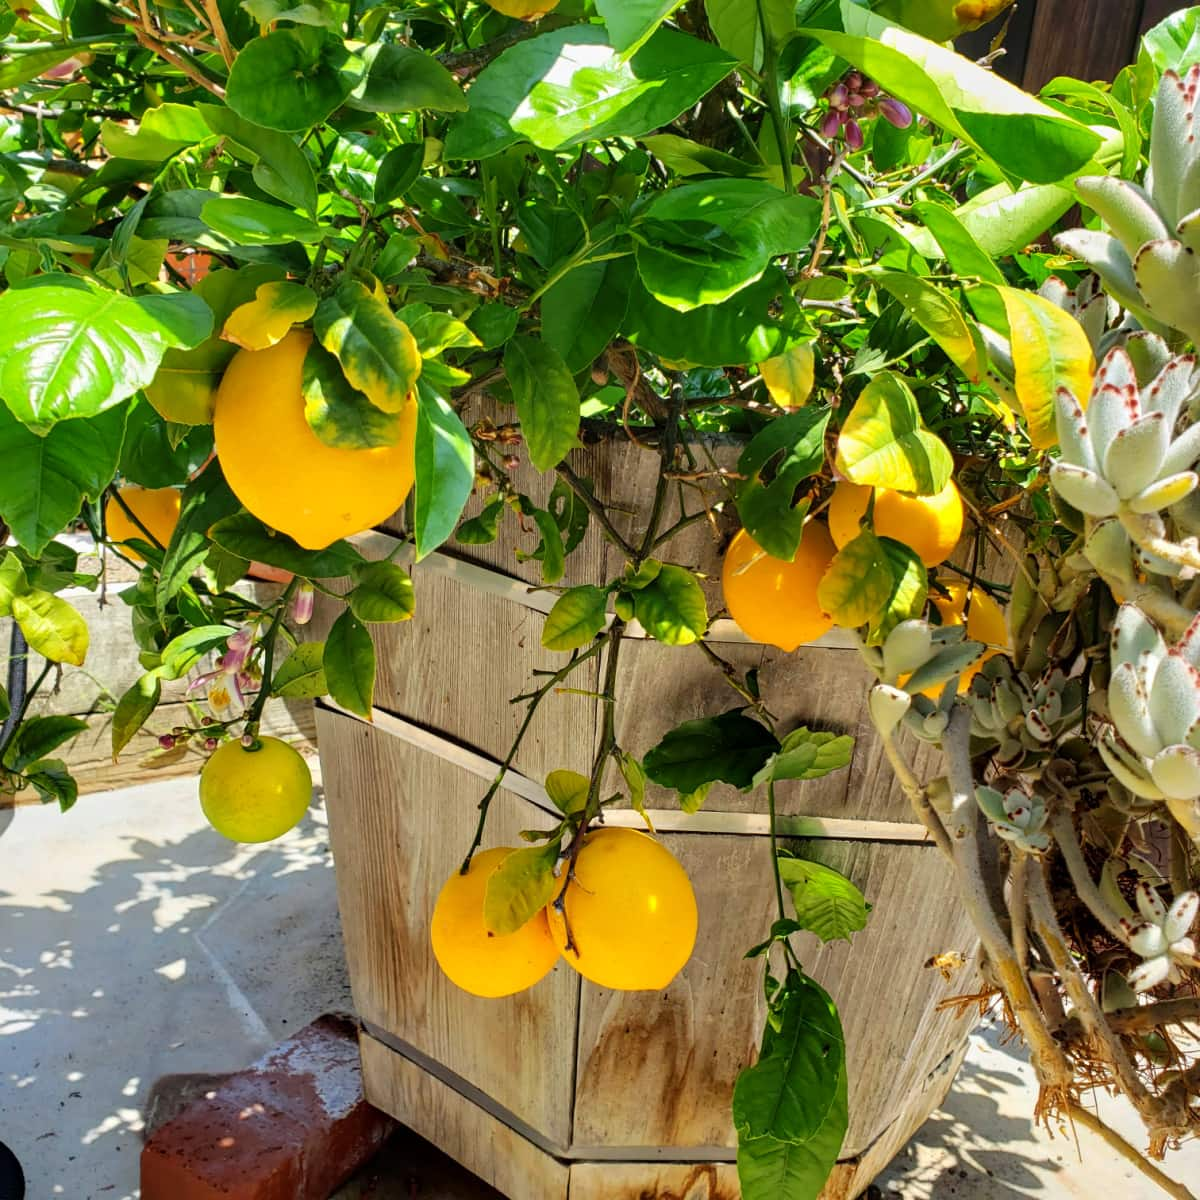 Dwarf Meyer Lemon tree in a half whiskey barrel with lemons hanging from the branches